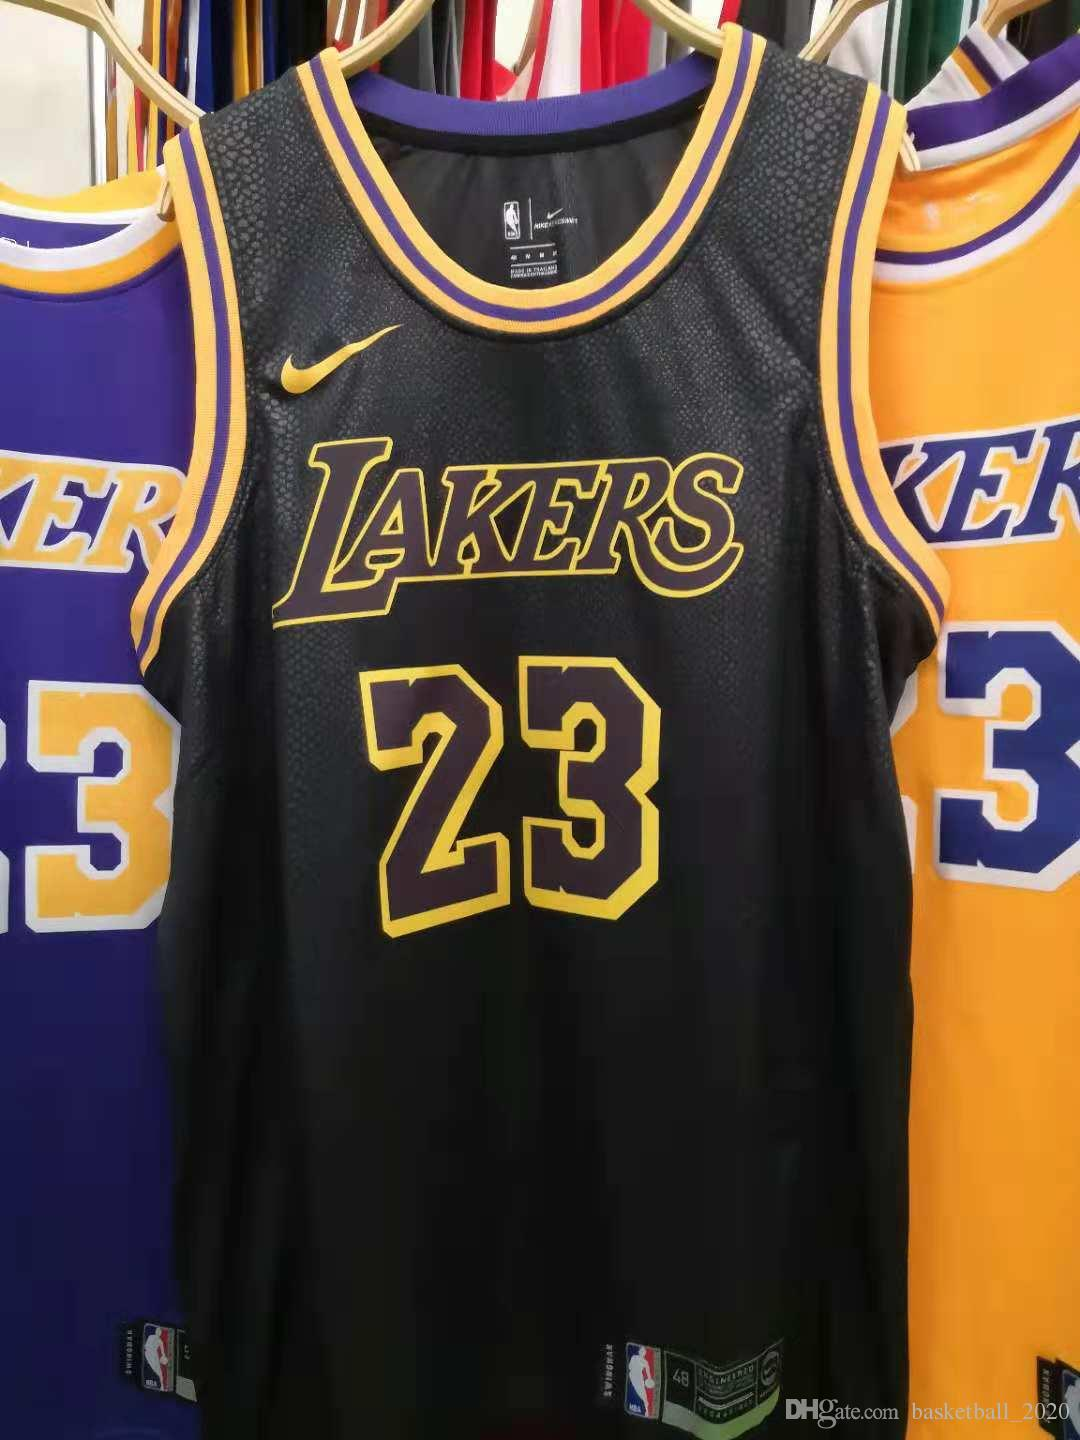 Lakers Black Jersey 2020 - Free Wallpaper HD Collection